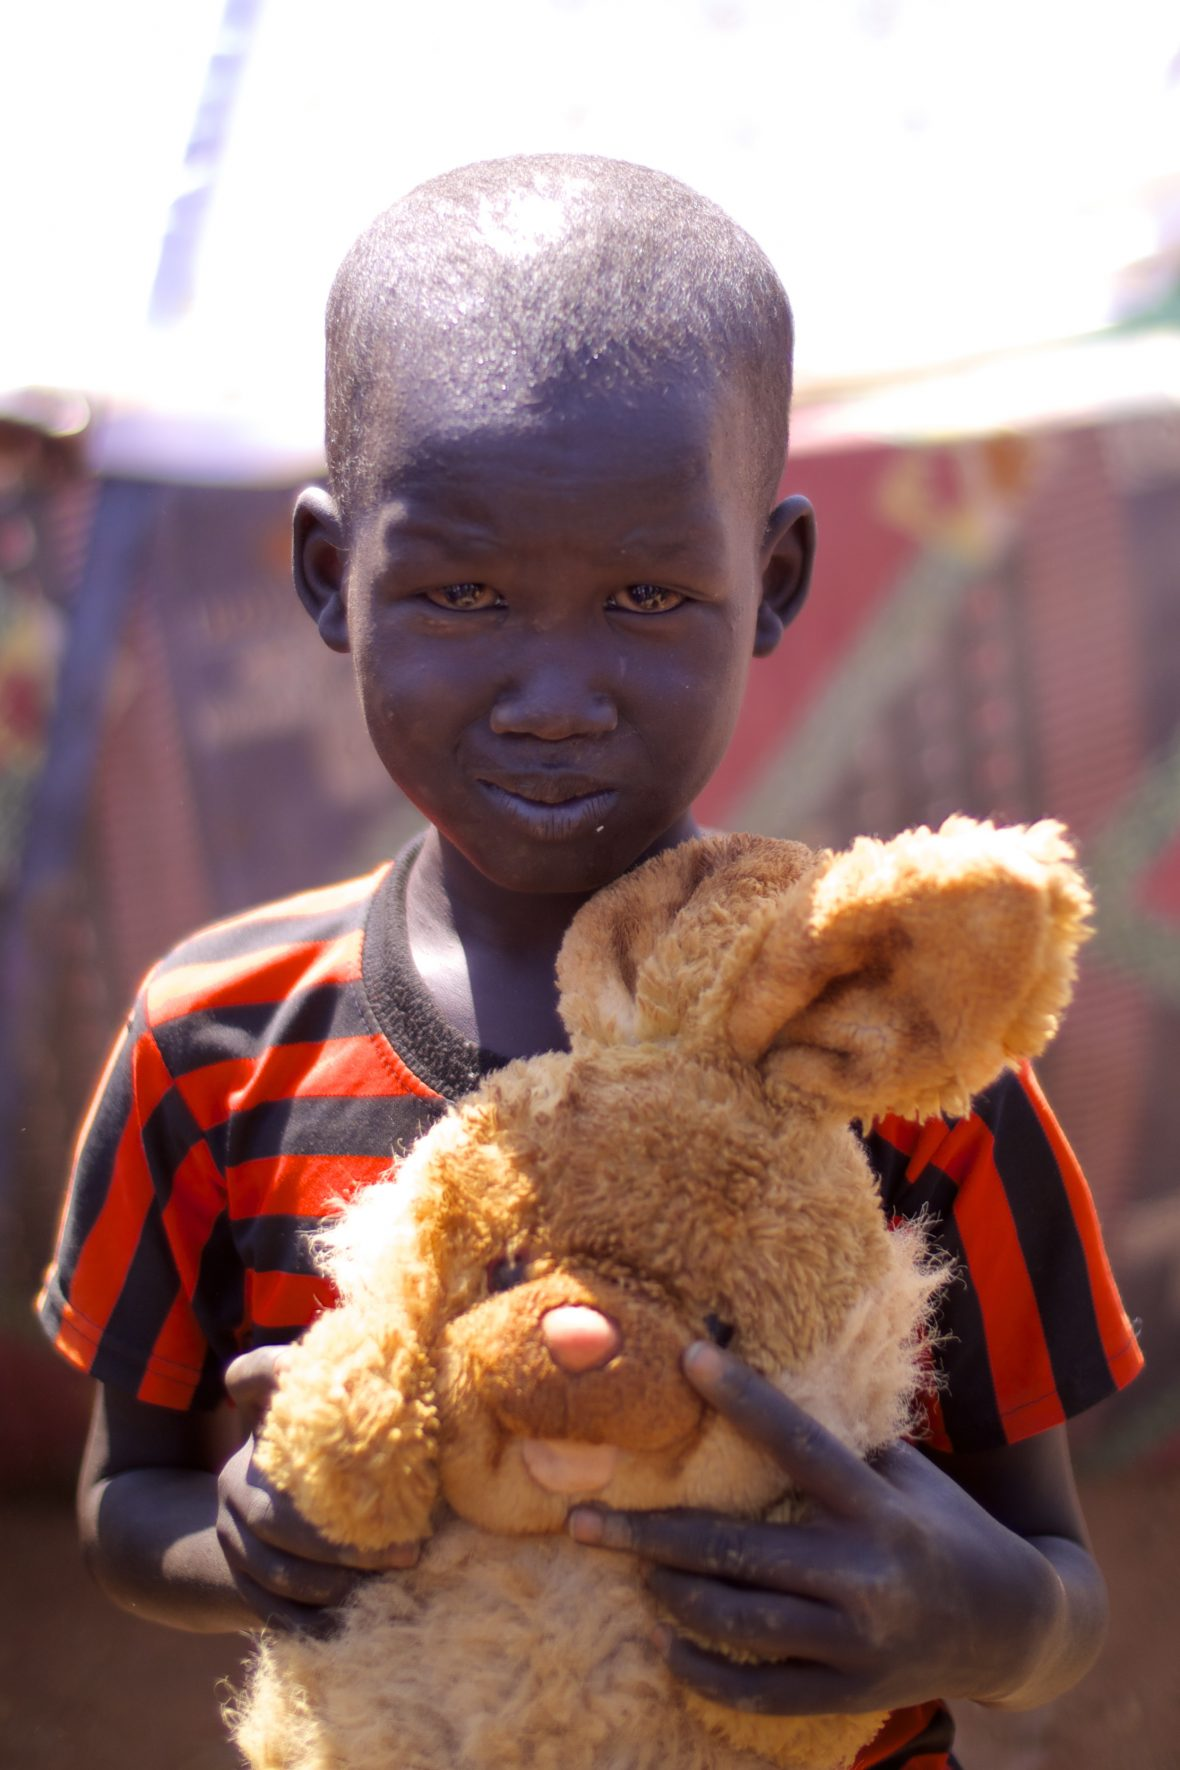 A displaced boy in South Sudan with a furry toy